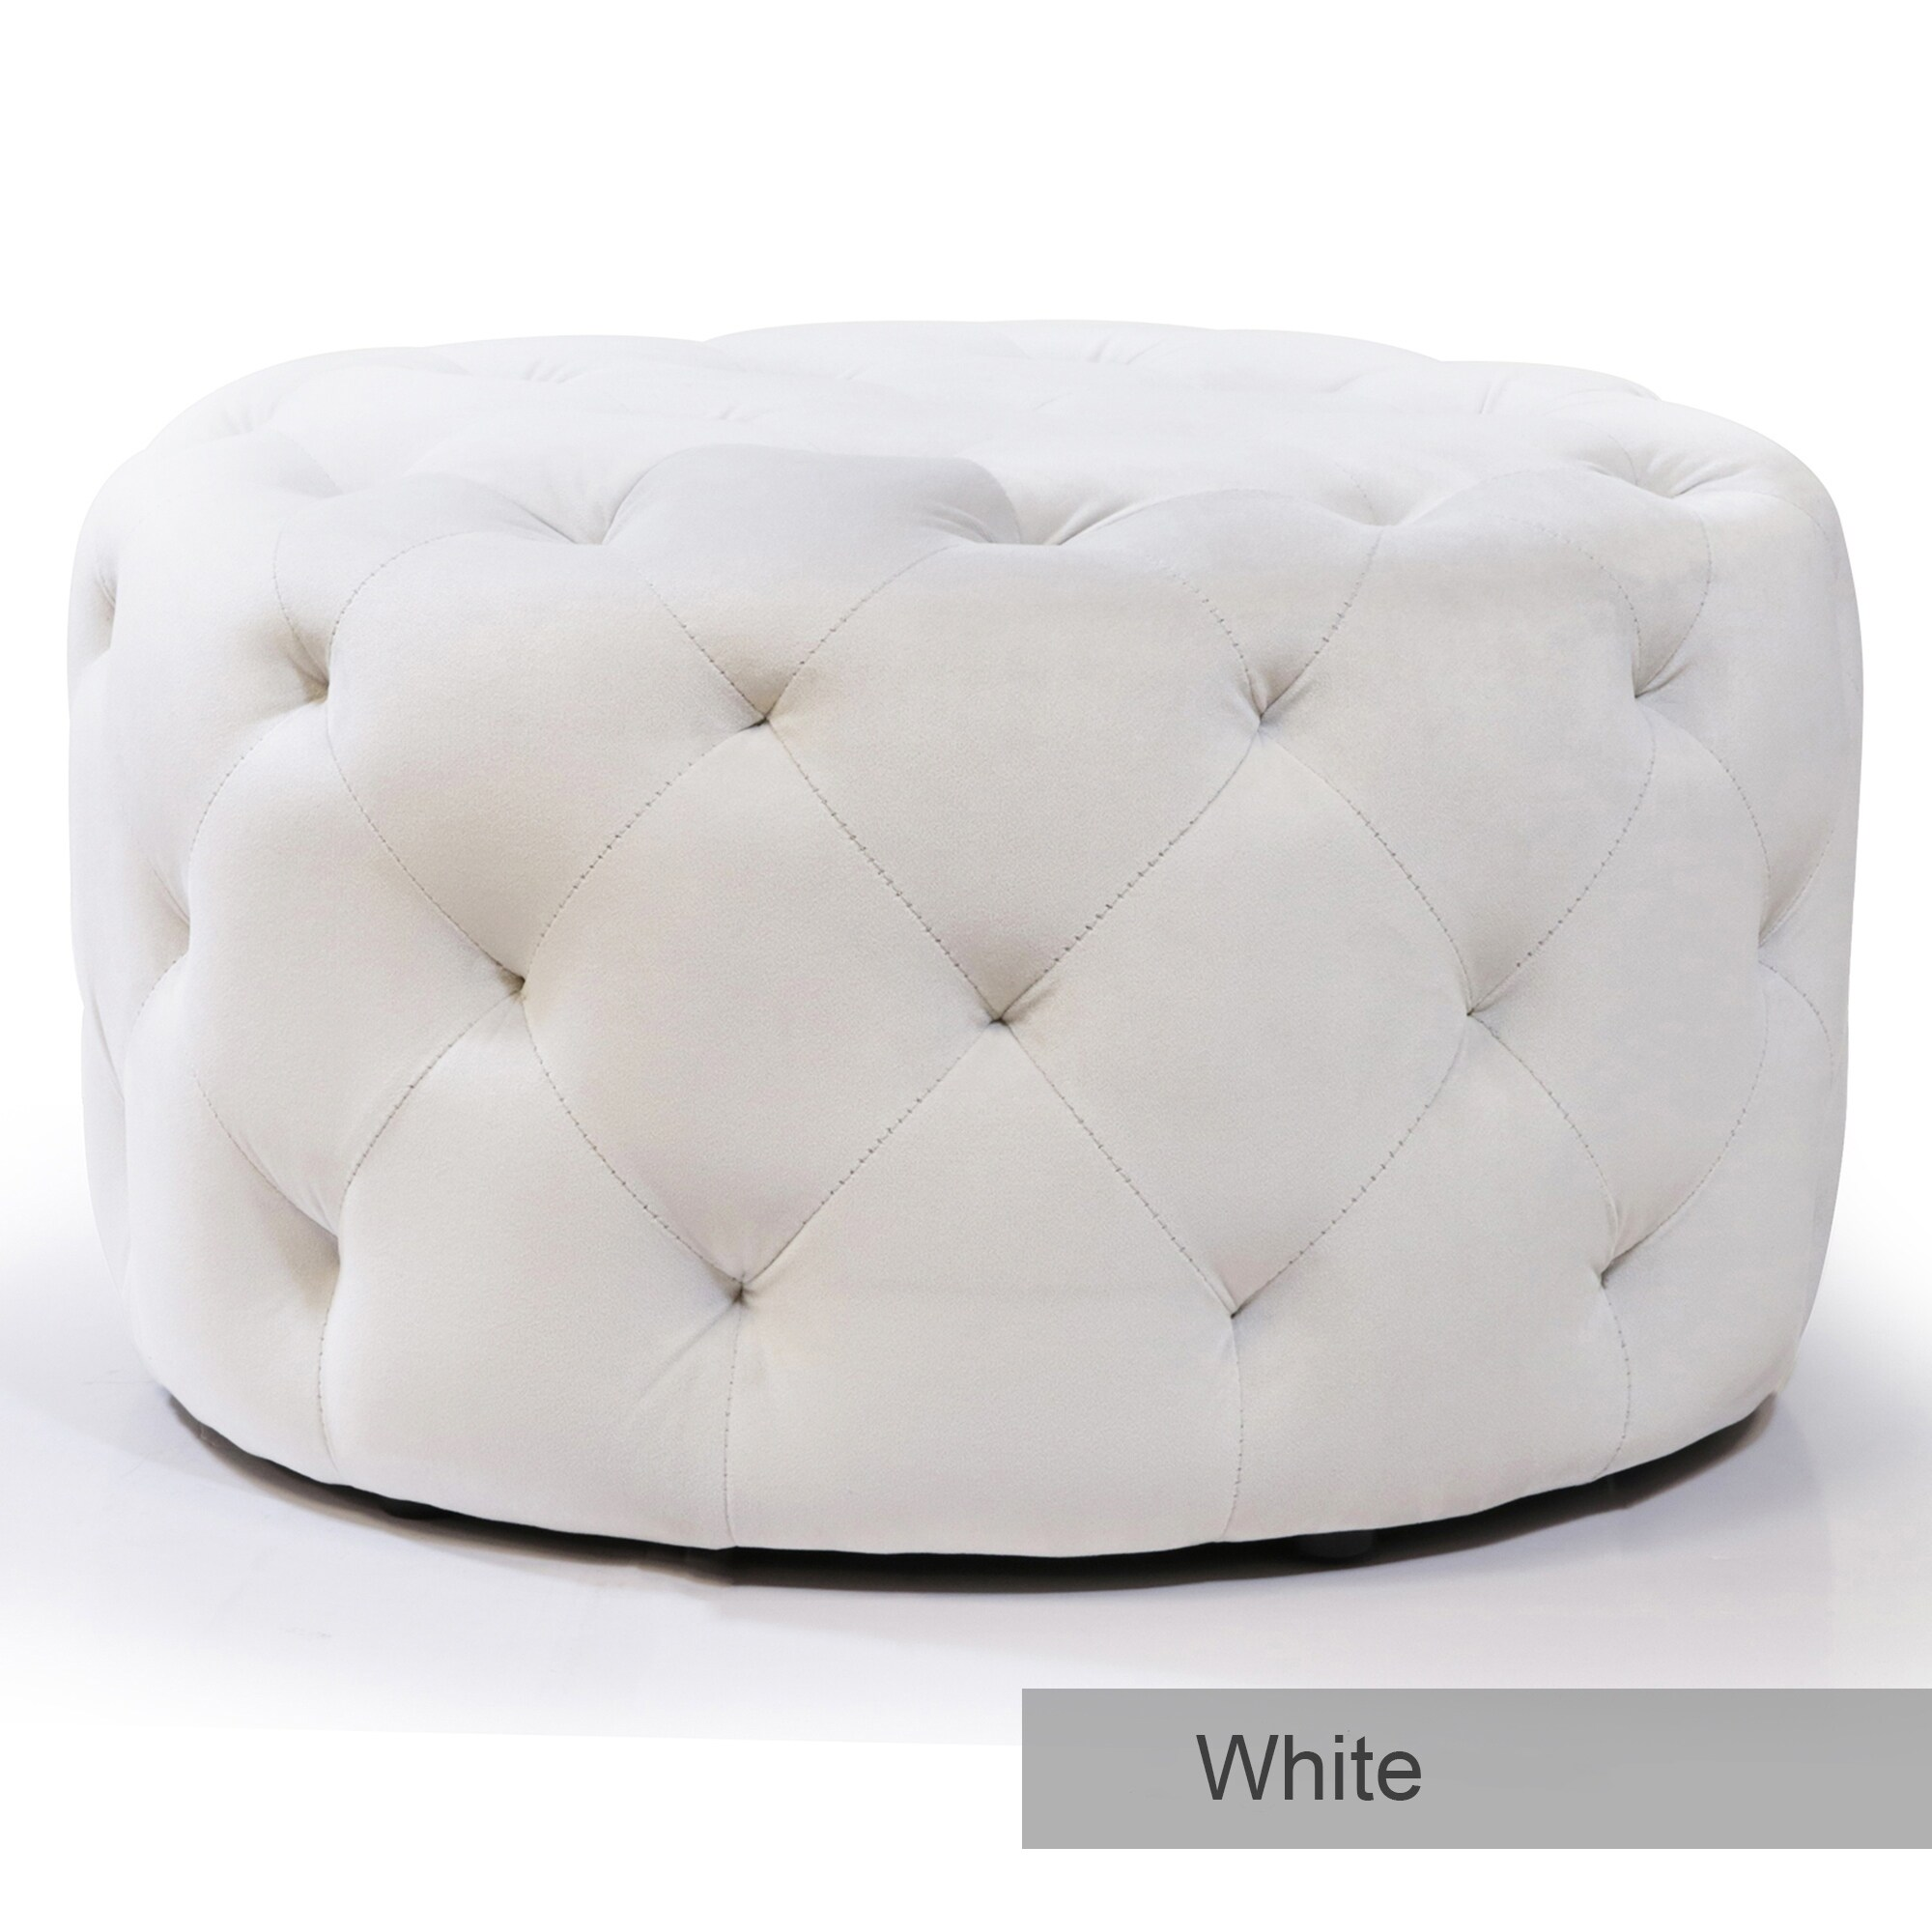 warehouse of tiffany meerna 24 inch round tufted padded ottoman optional colors